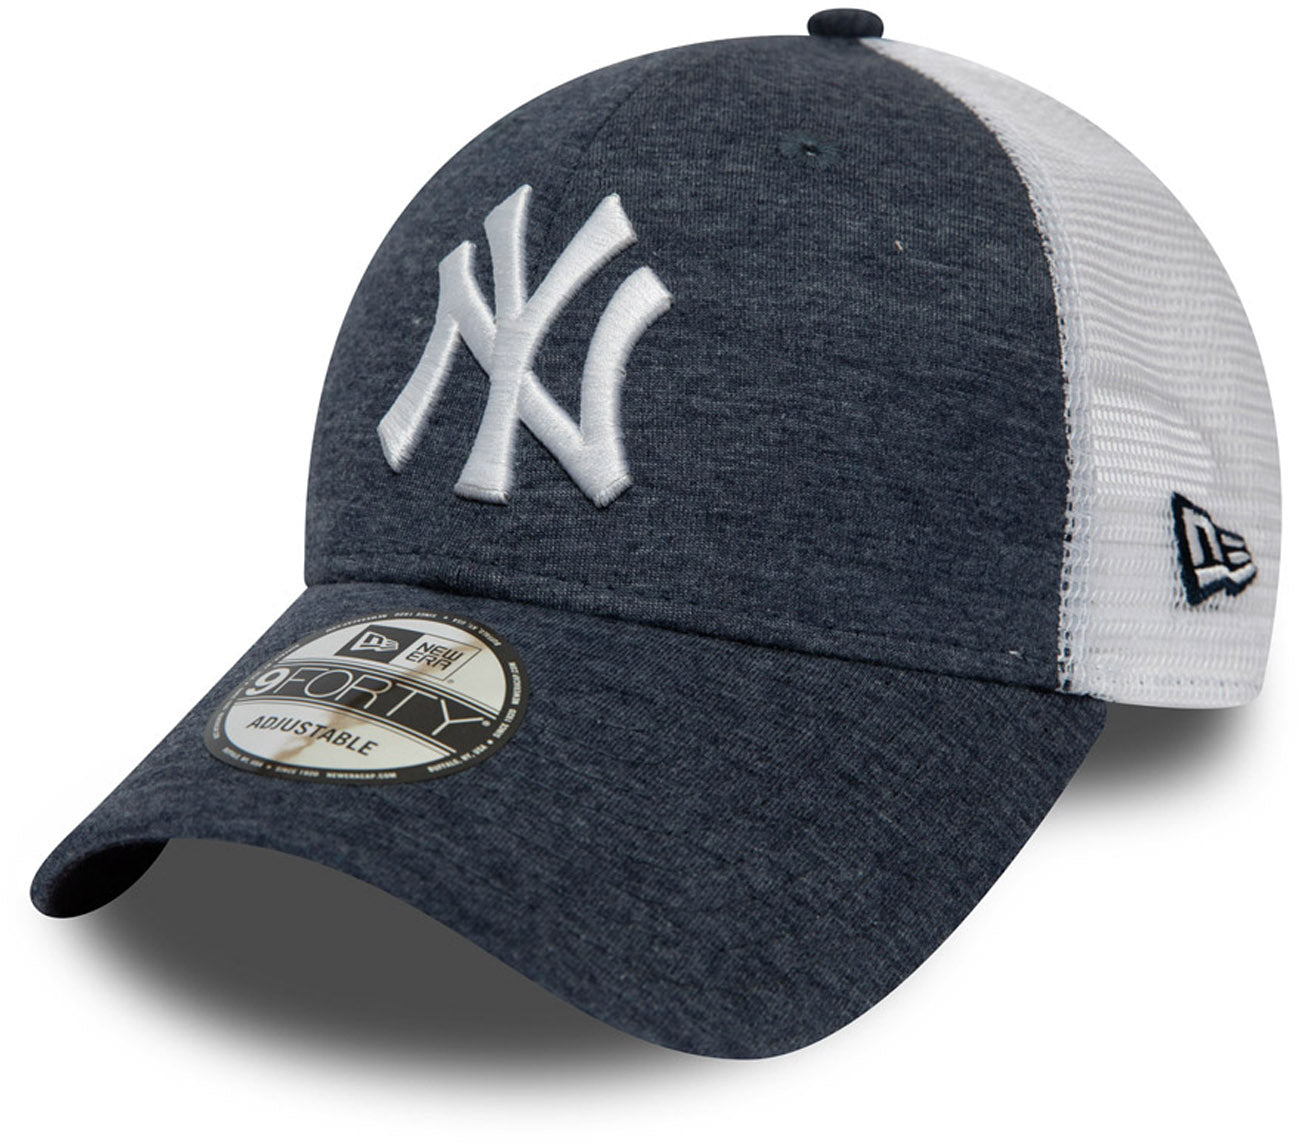 f966c2e2 NY Yankees New Era 940 Summer League Baseball Cap – lovemycap